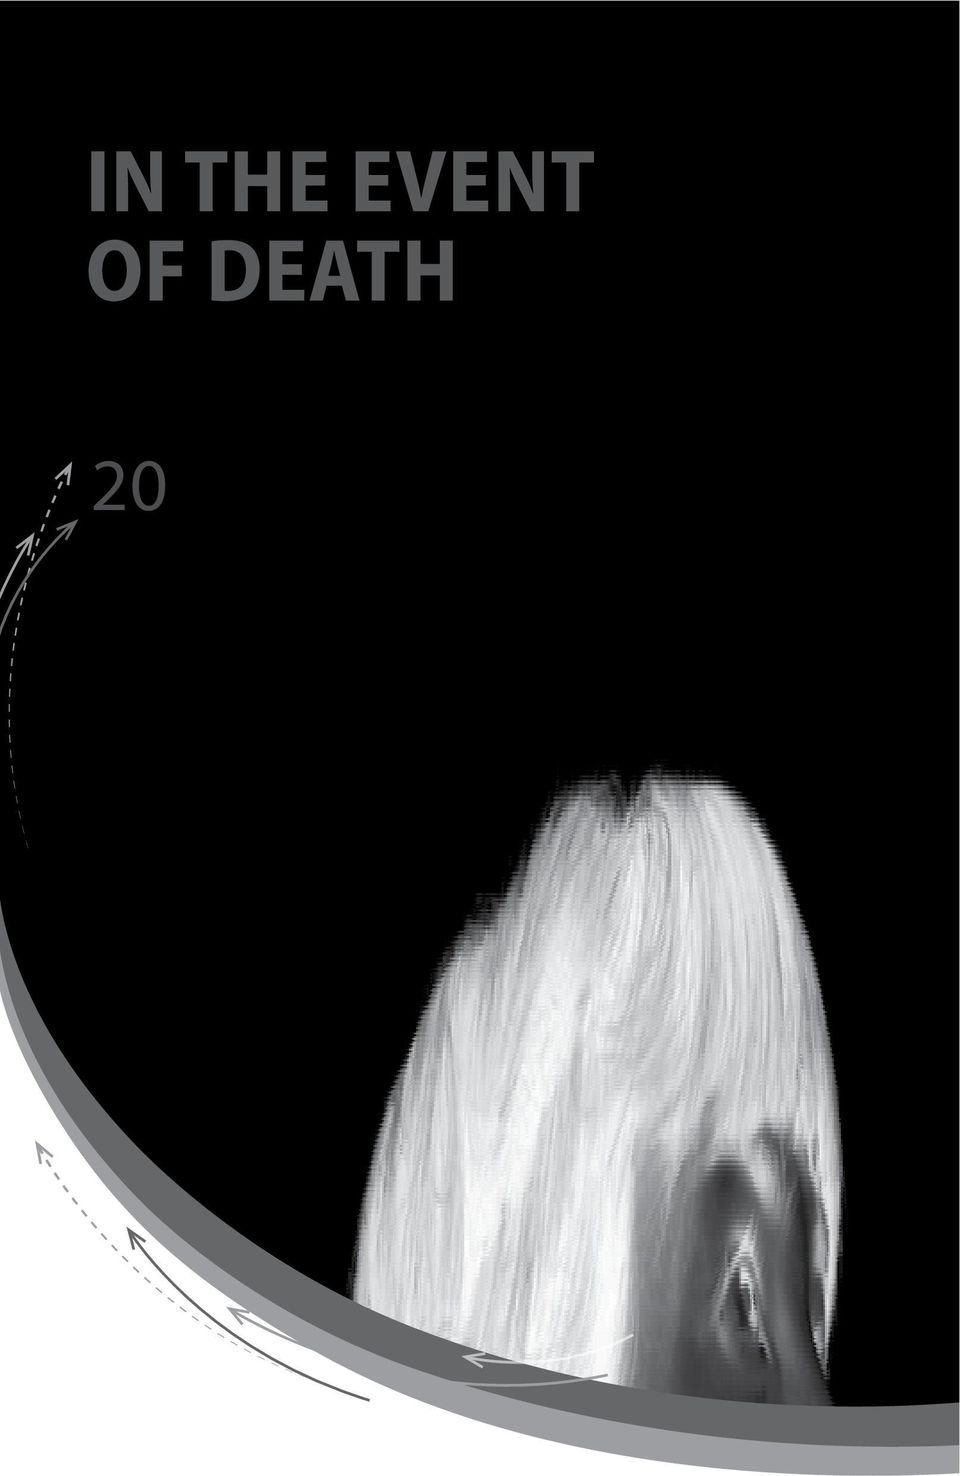 OF DEATH 20